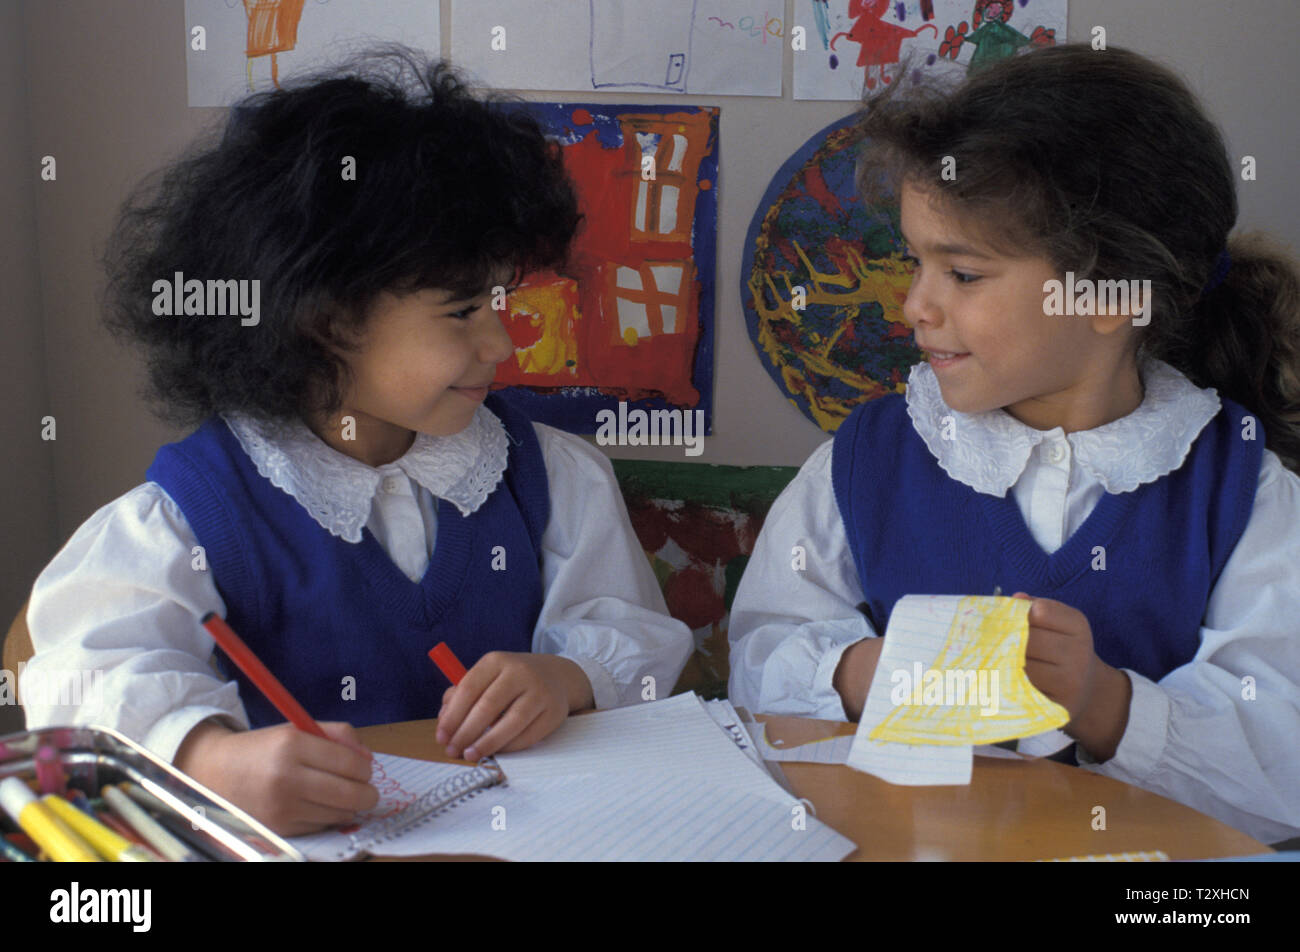 two little girls in class Stock Photo